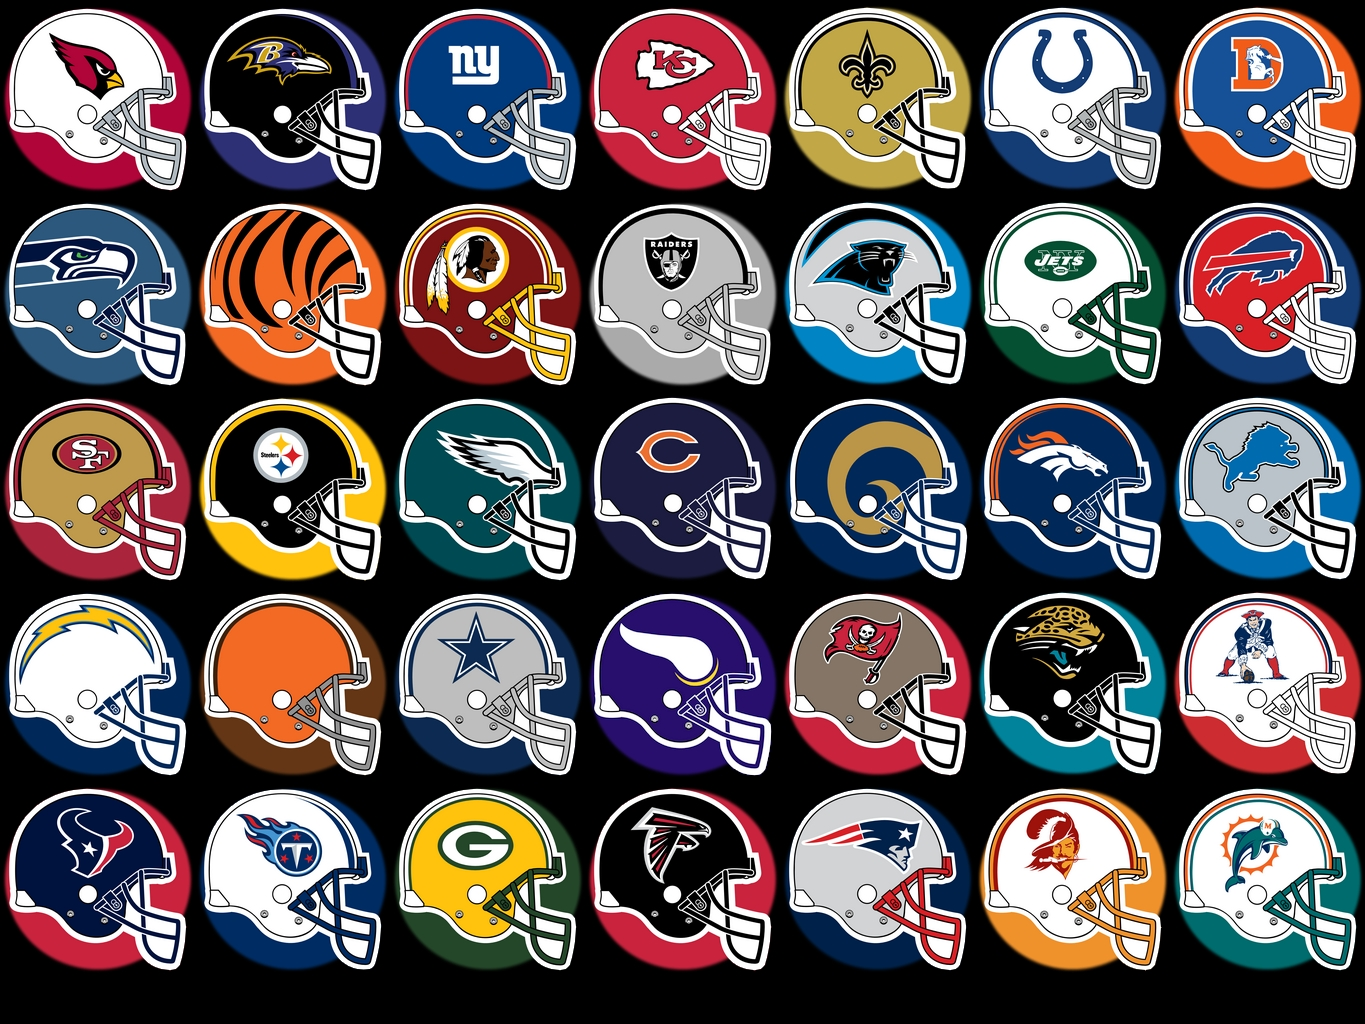 NFL Team Logos   Photo 278 of 416 phombocom 1365x1024